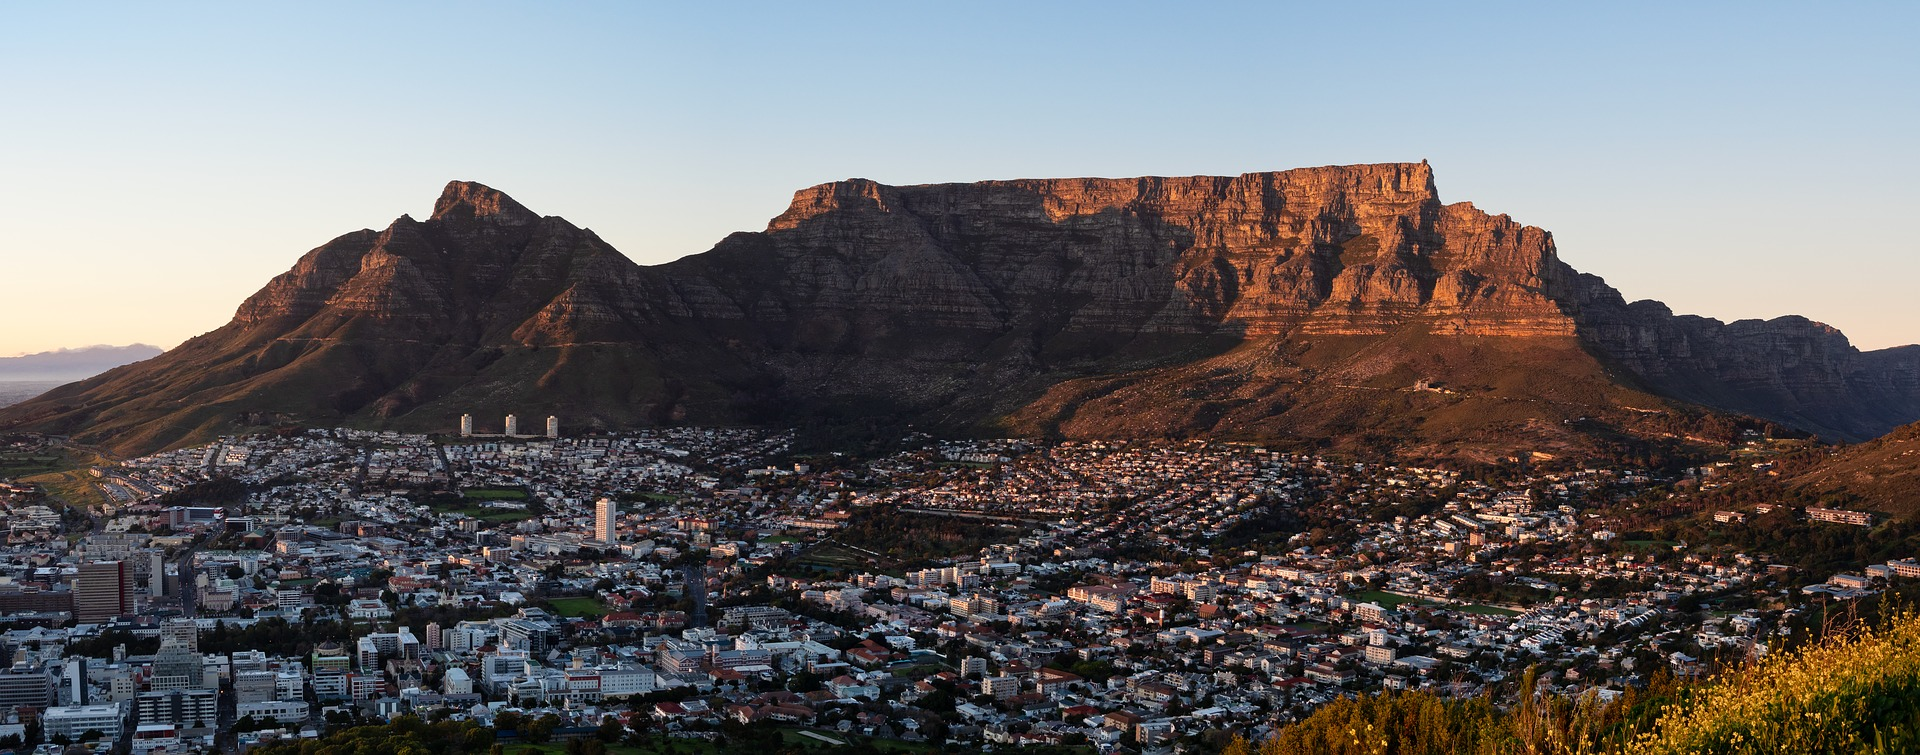 Table Mountain, Cape Town, South Africa Image by Jean van der Meulen from Pixabay